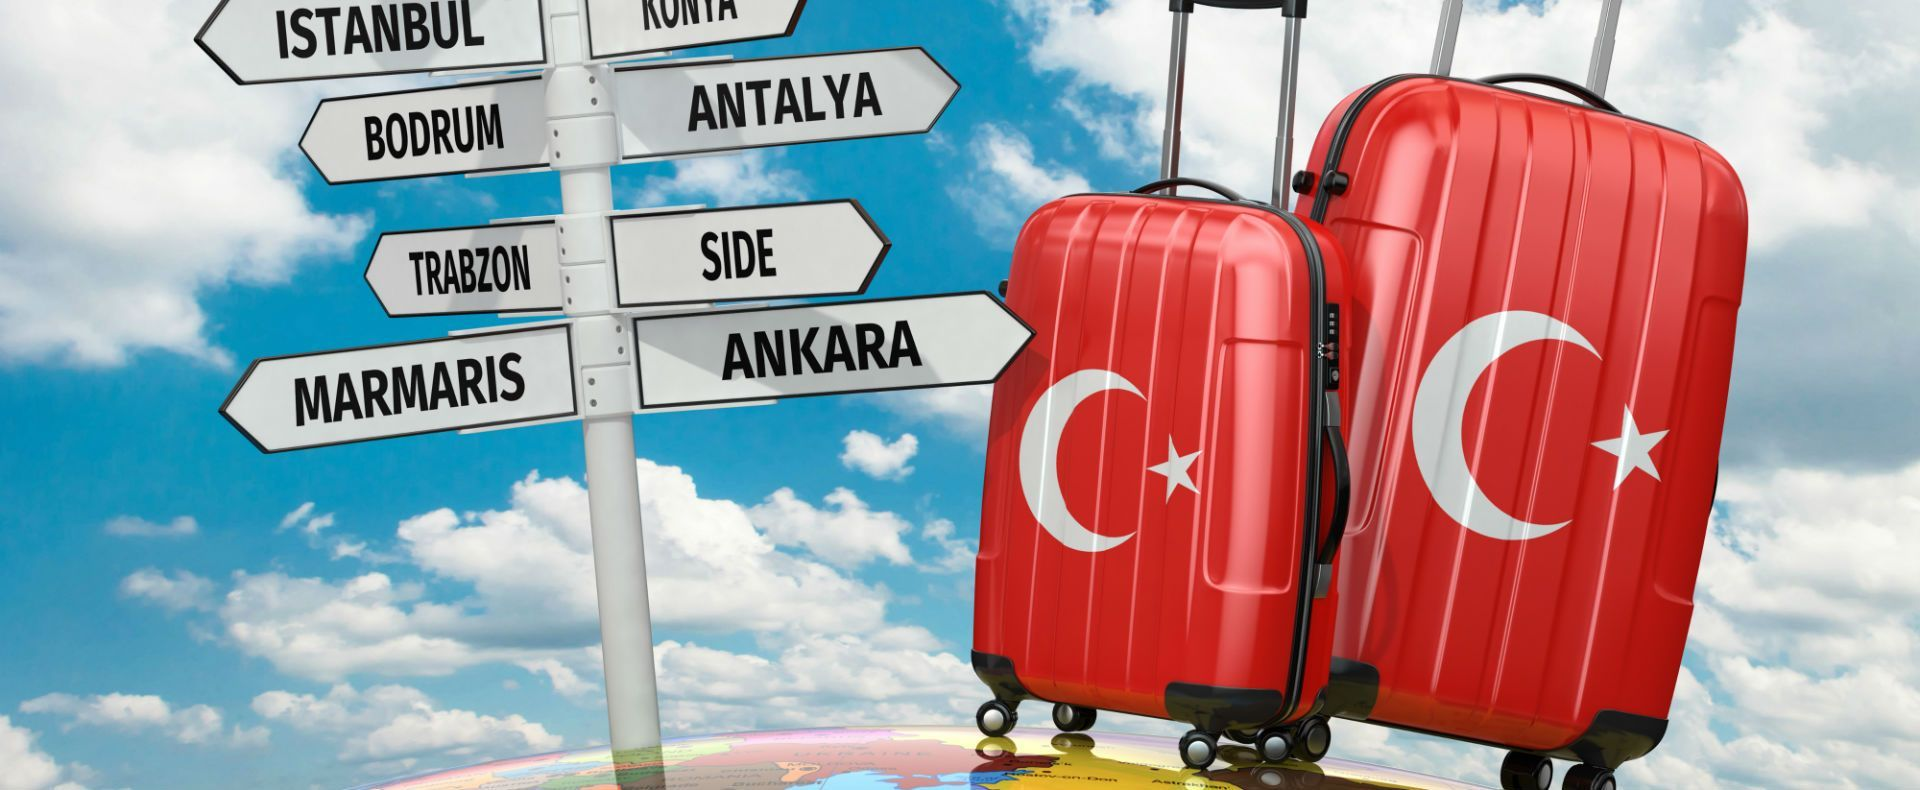 Your Turkey airport taxis is booked prior to with our secure on-line booking system. no matter your destination, whether or not it's Antalya Airport taxi transfer,Dalaman airport taxi transfer or Izmir airport taxi transfer that you just would like, it's a really easy, safe and fast method to book your Turkey airport transfers with us.  http://www.sunsettransfer.com/index.html  The Airport Transfer Company SunSetTransfer : telephone:0090 242 335 5151 Airport Transfers